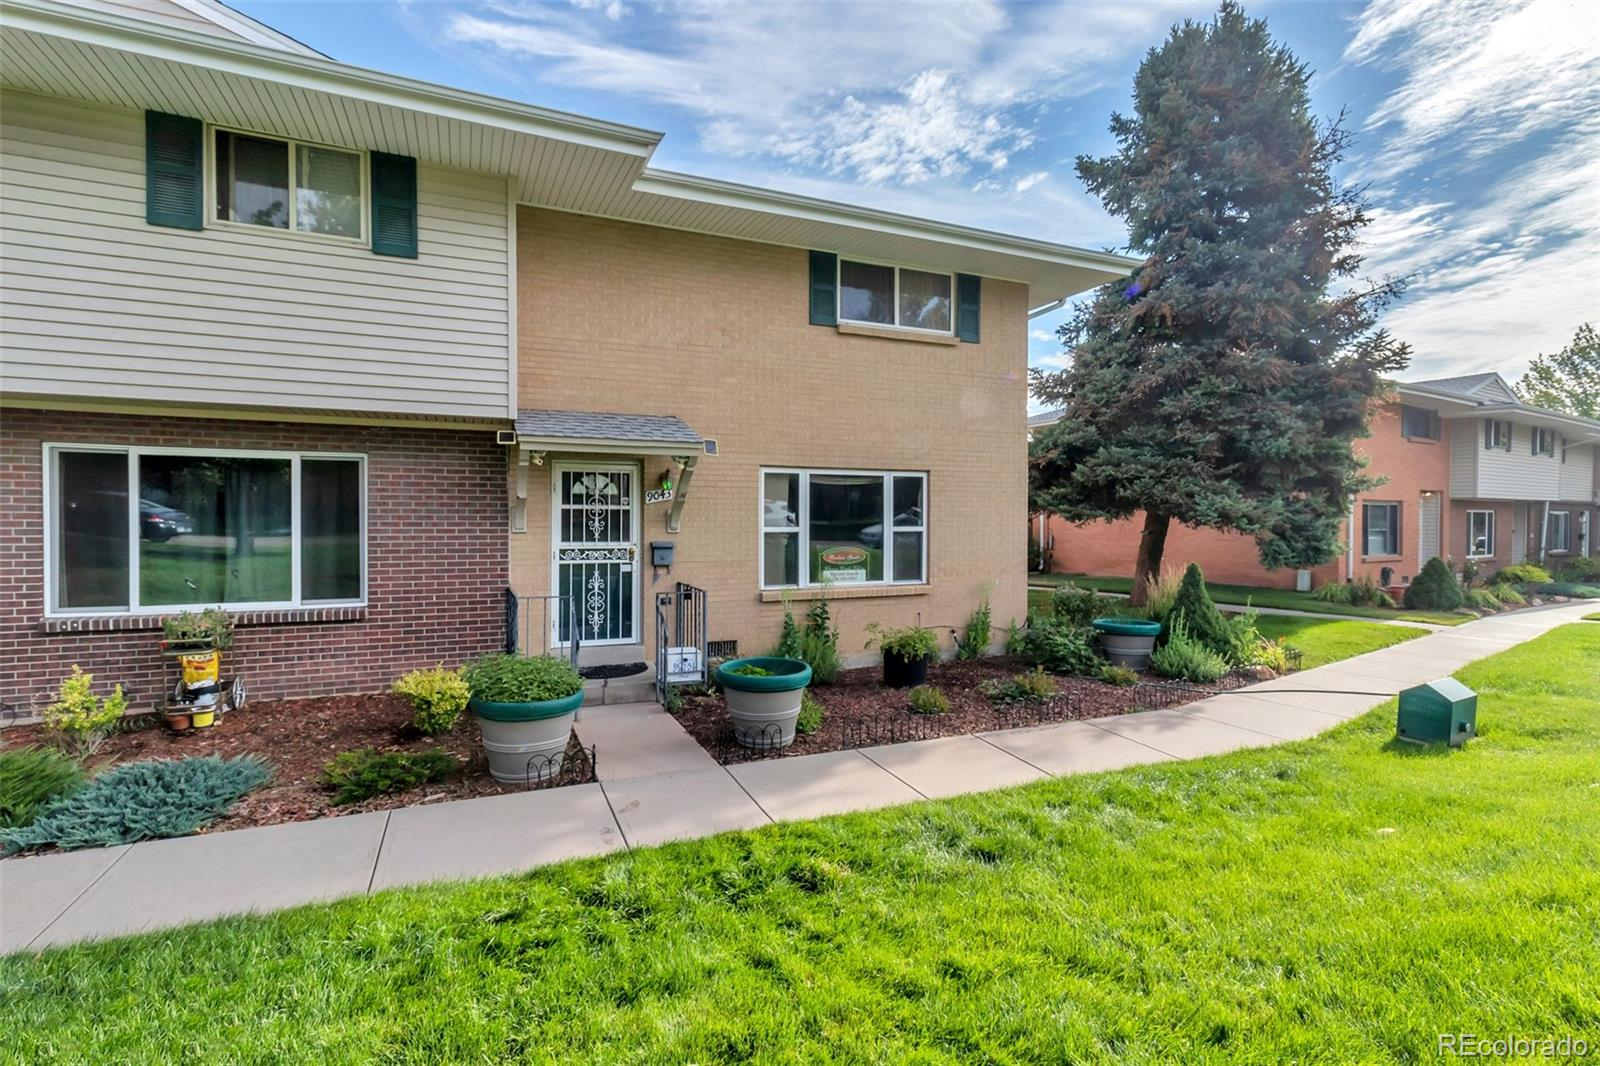 MLS# 1579821 - 2 - 9043 E Mansfield Avenue, Denver, CO 80237